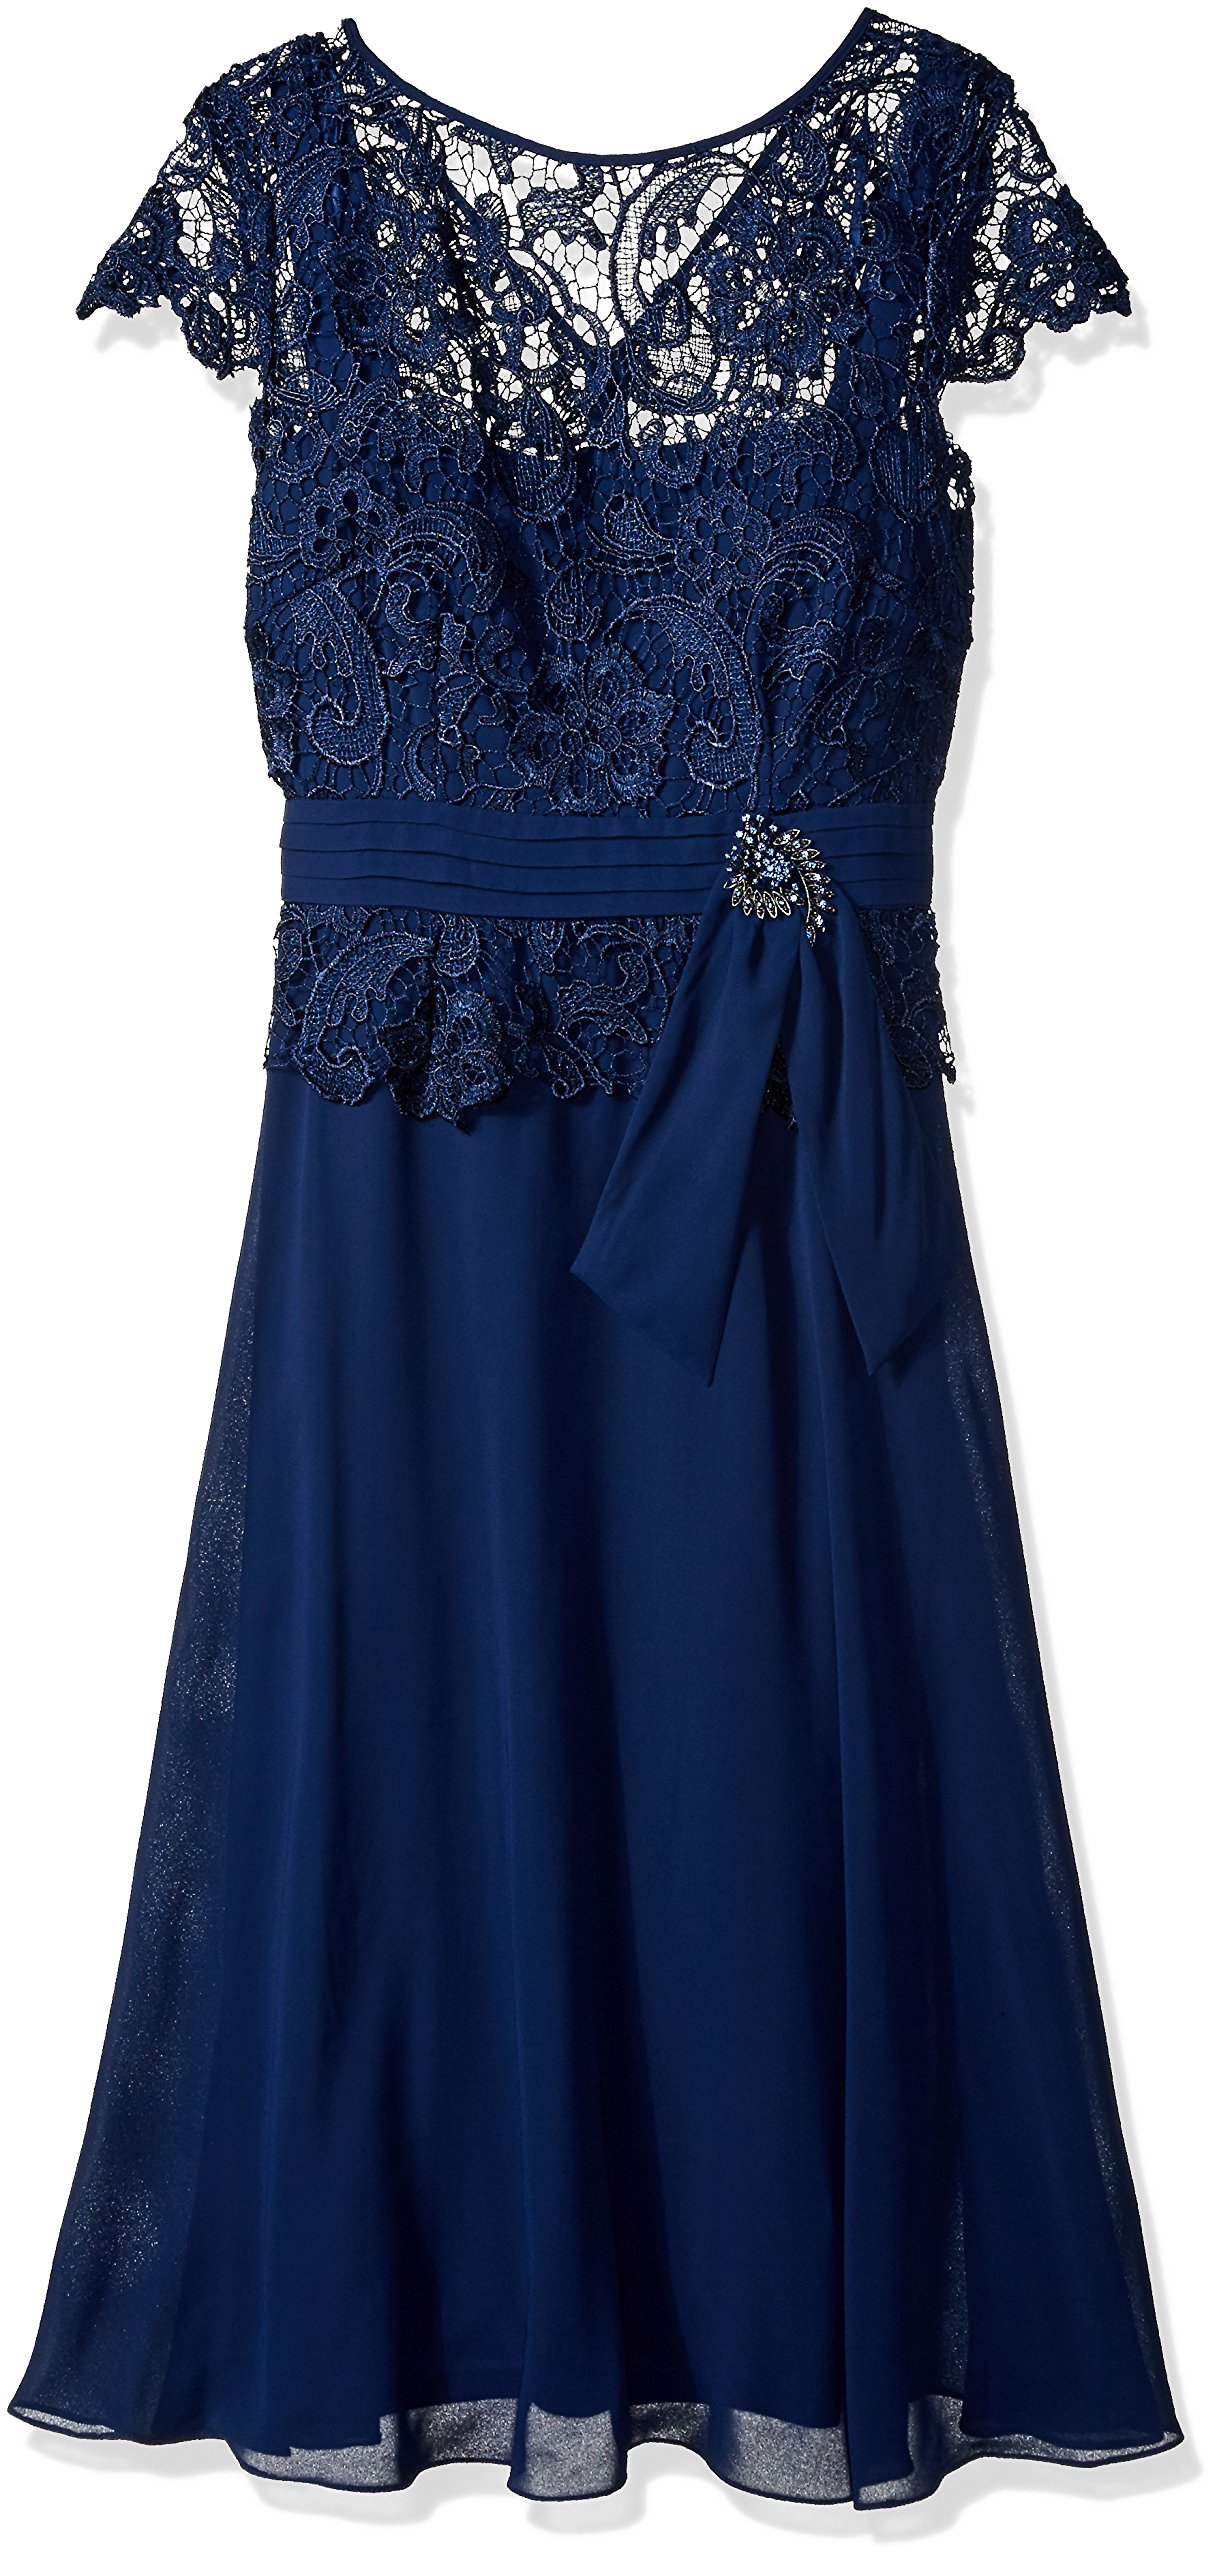 Emma Street Women's Lace Top with Pleated Sash and Tea Length Chiffon Skirt, Navy, 12